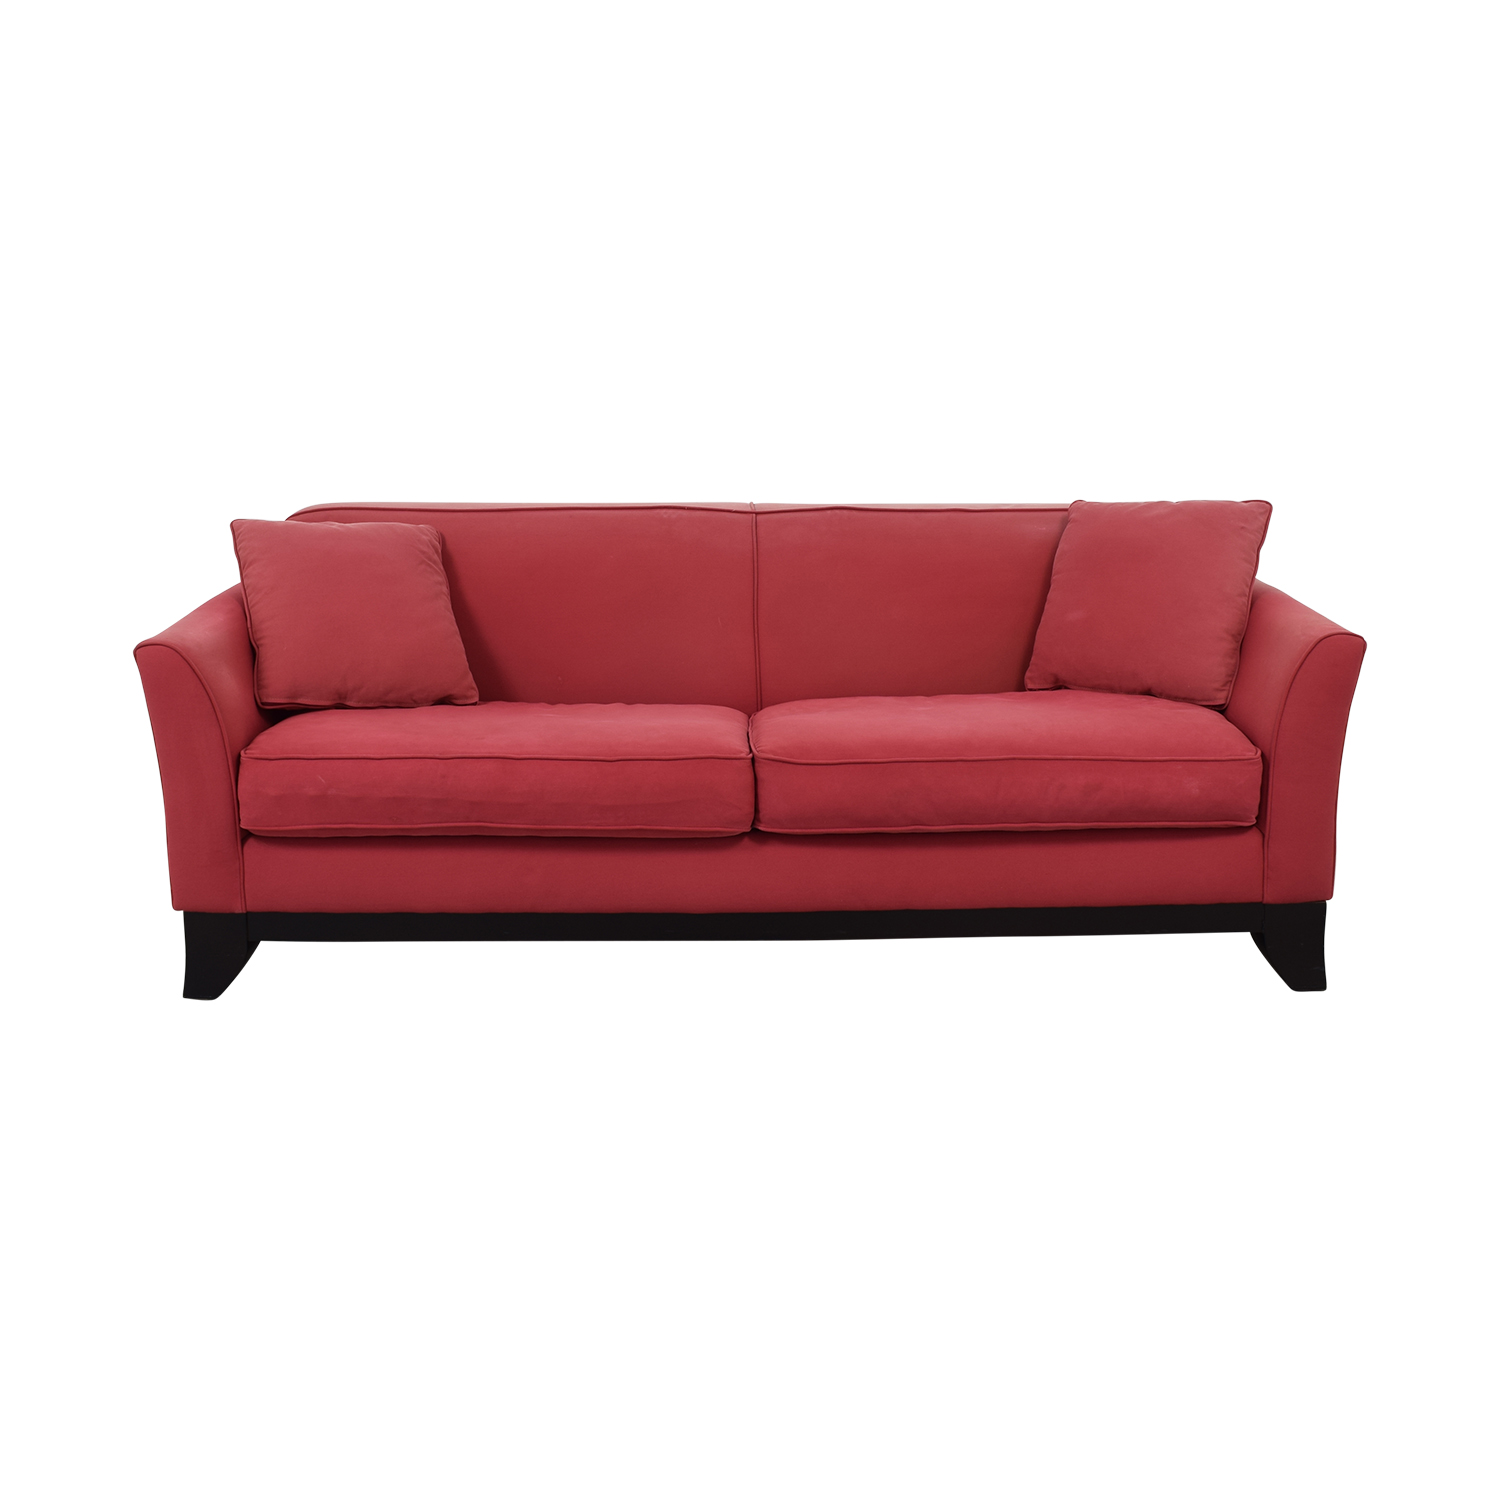 Pottery Barn Pottery Barn Cardinal Red Two-Cushion Sofa second hand